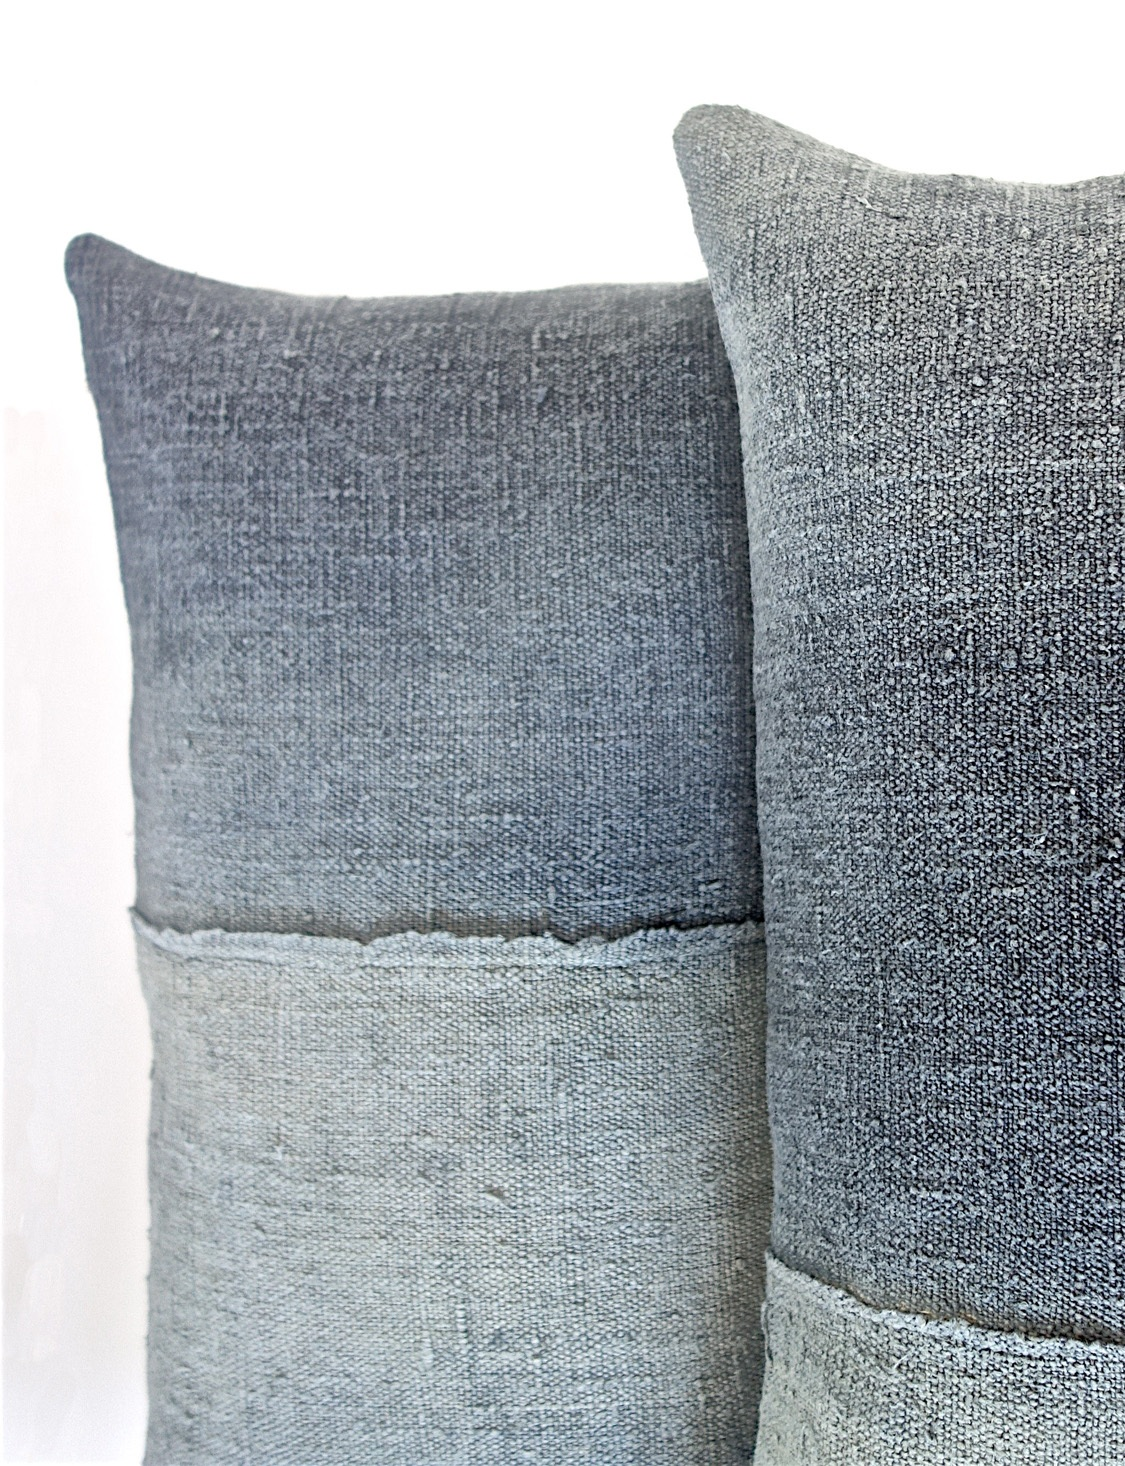 espanyolet_gray_pillows_texture_detail.jpg